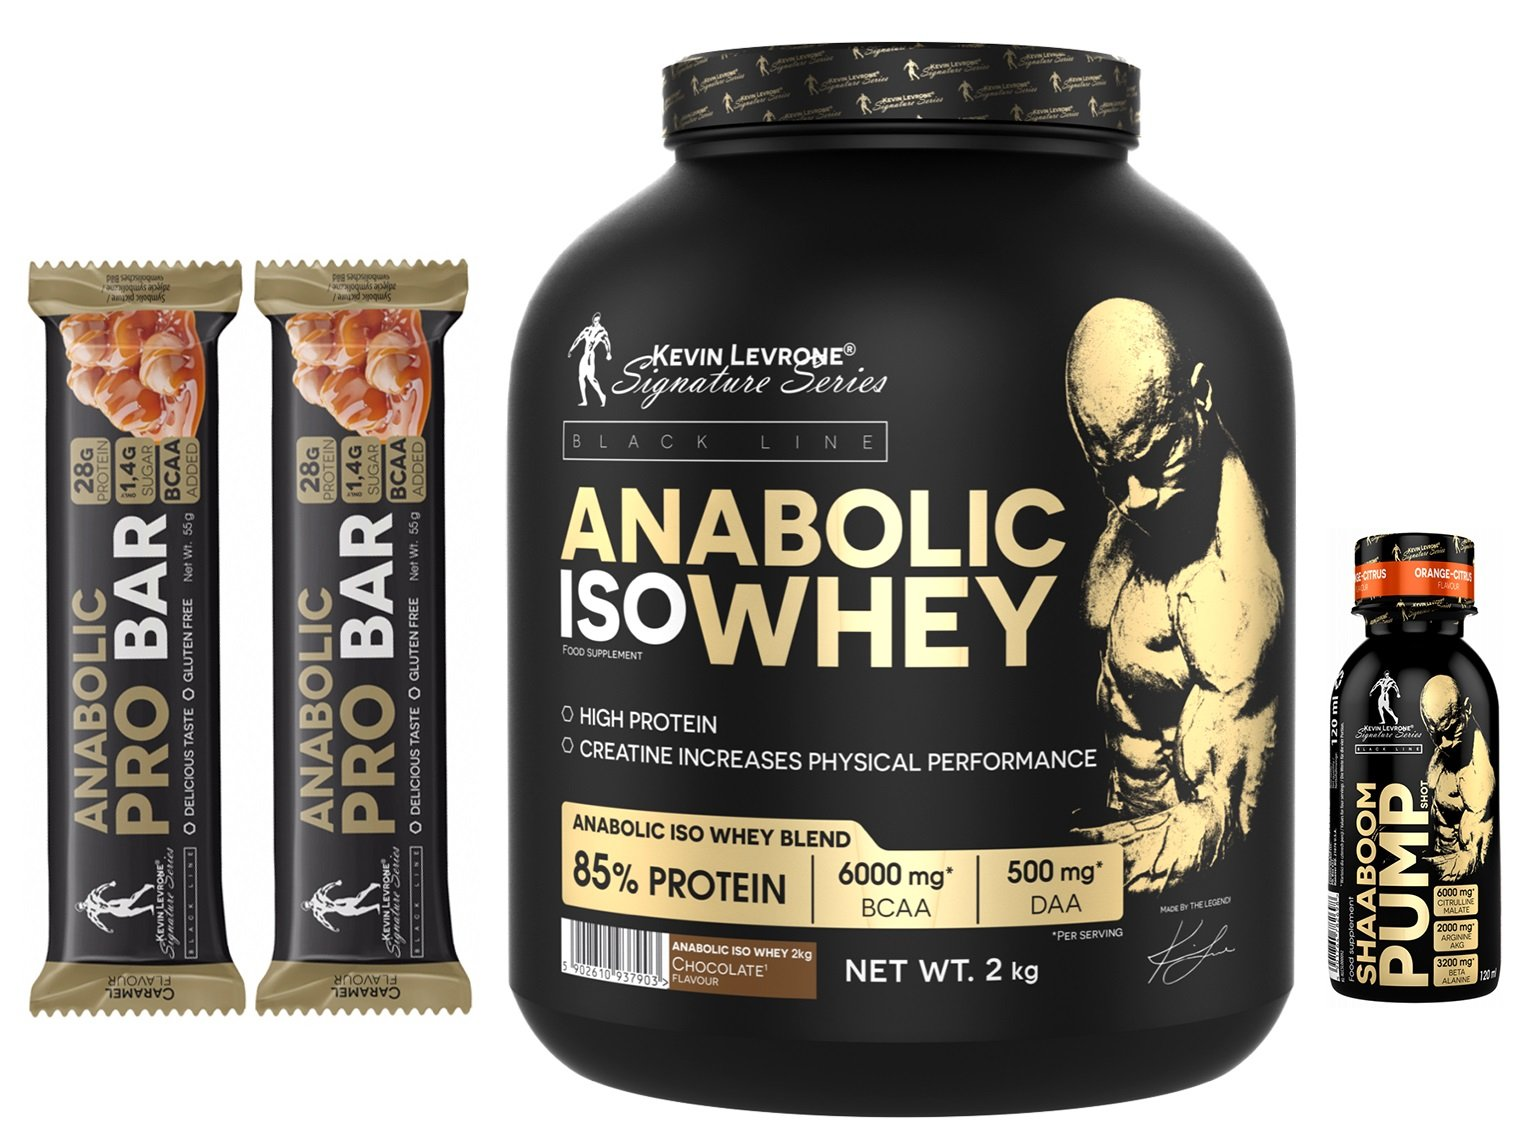 Anabolic Iso Whey - Kevin Levrone 2000 g Cookies with Cream